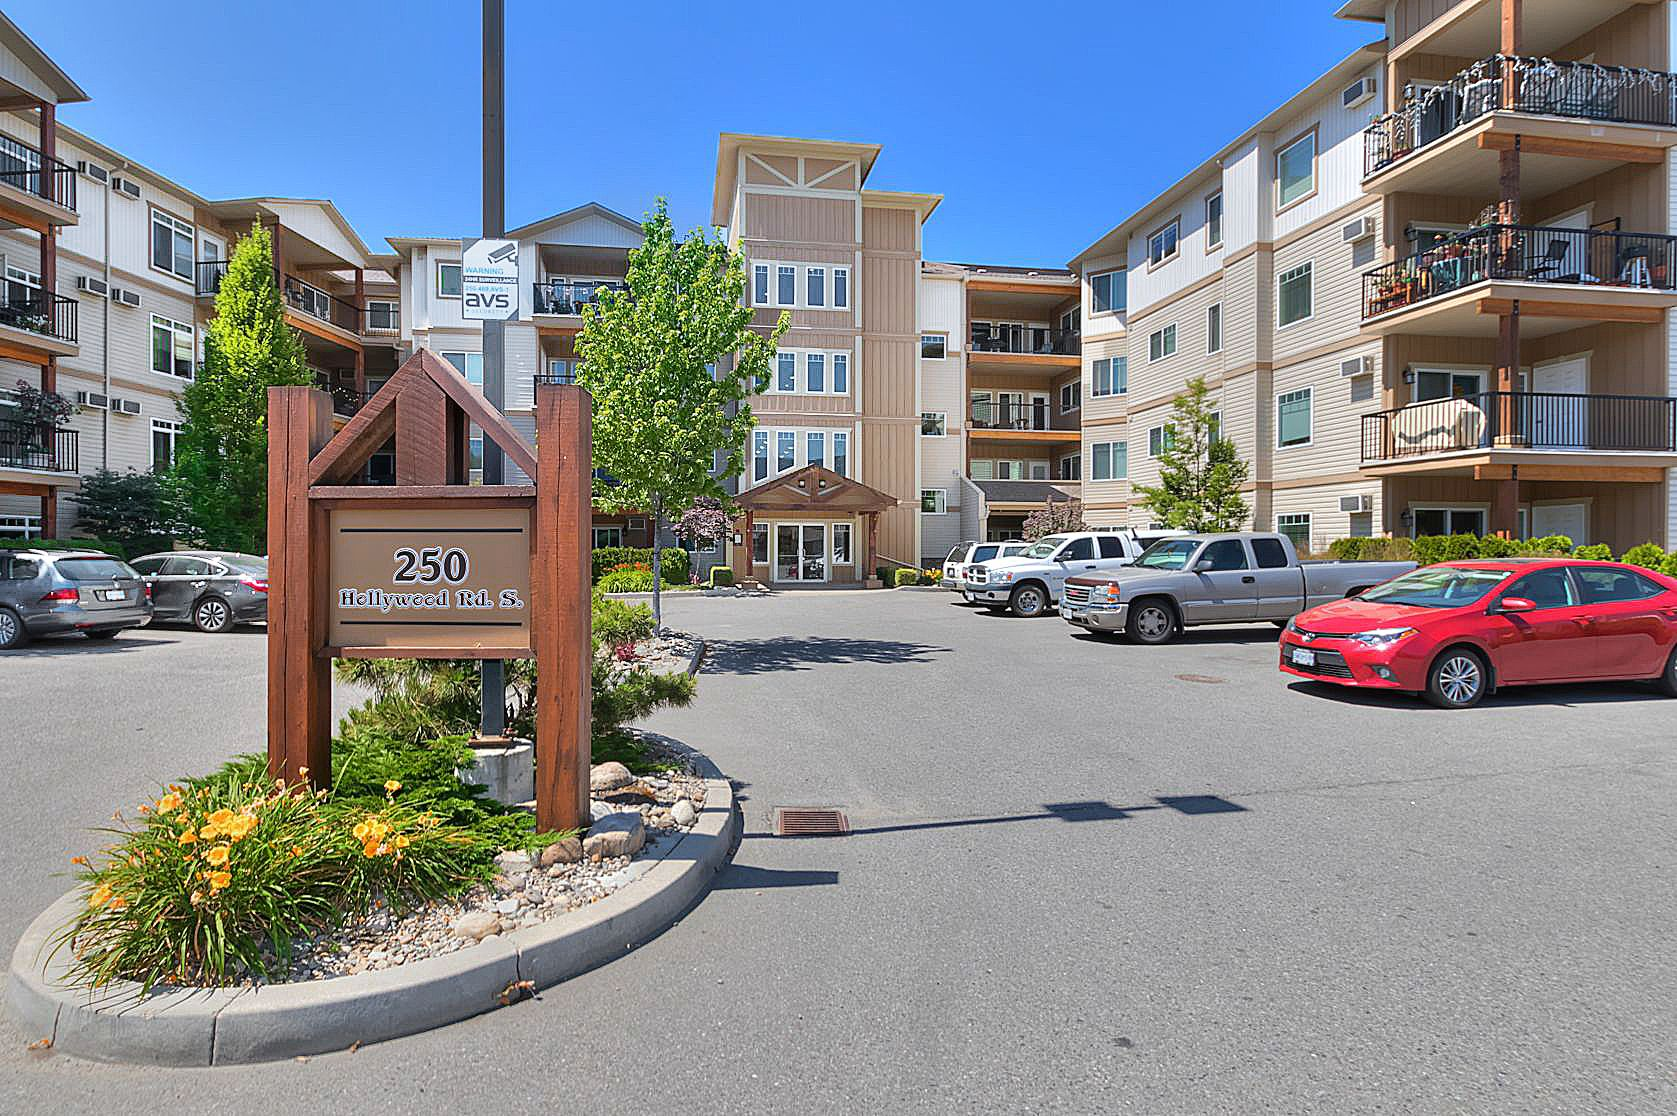 Main Photo: 119 250 Hollywood Road in Kelowna: Rutland South Multi-family for sale (Central Okanagan)  : MLS®# 10142864